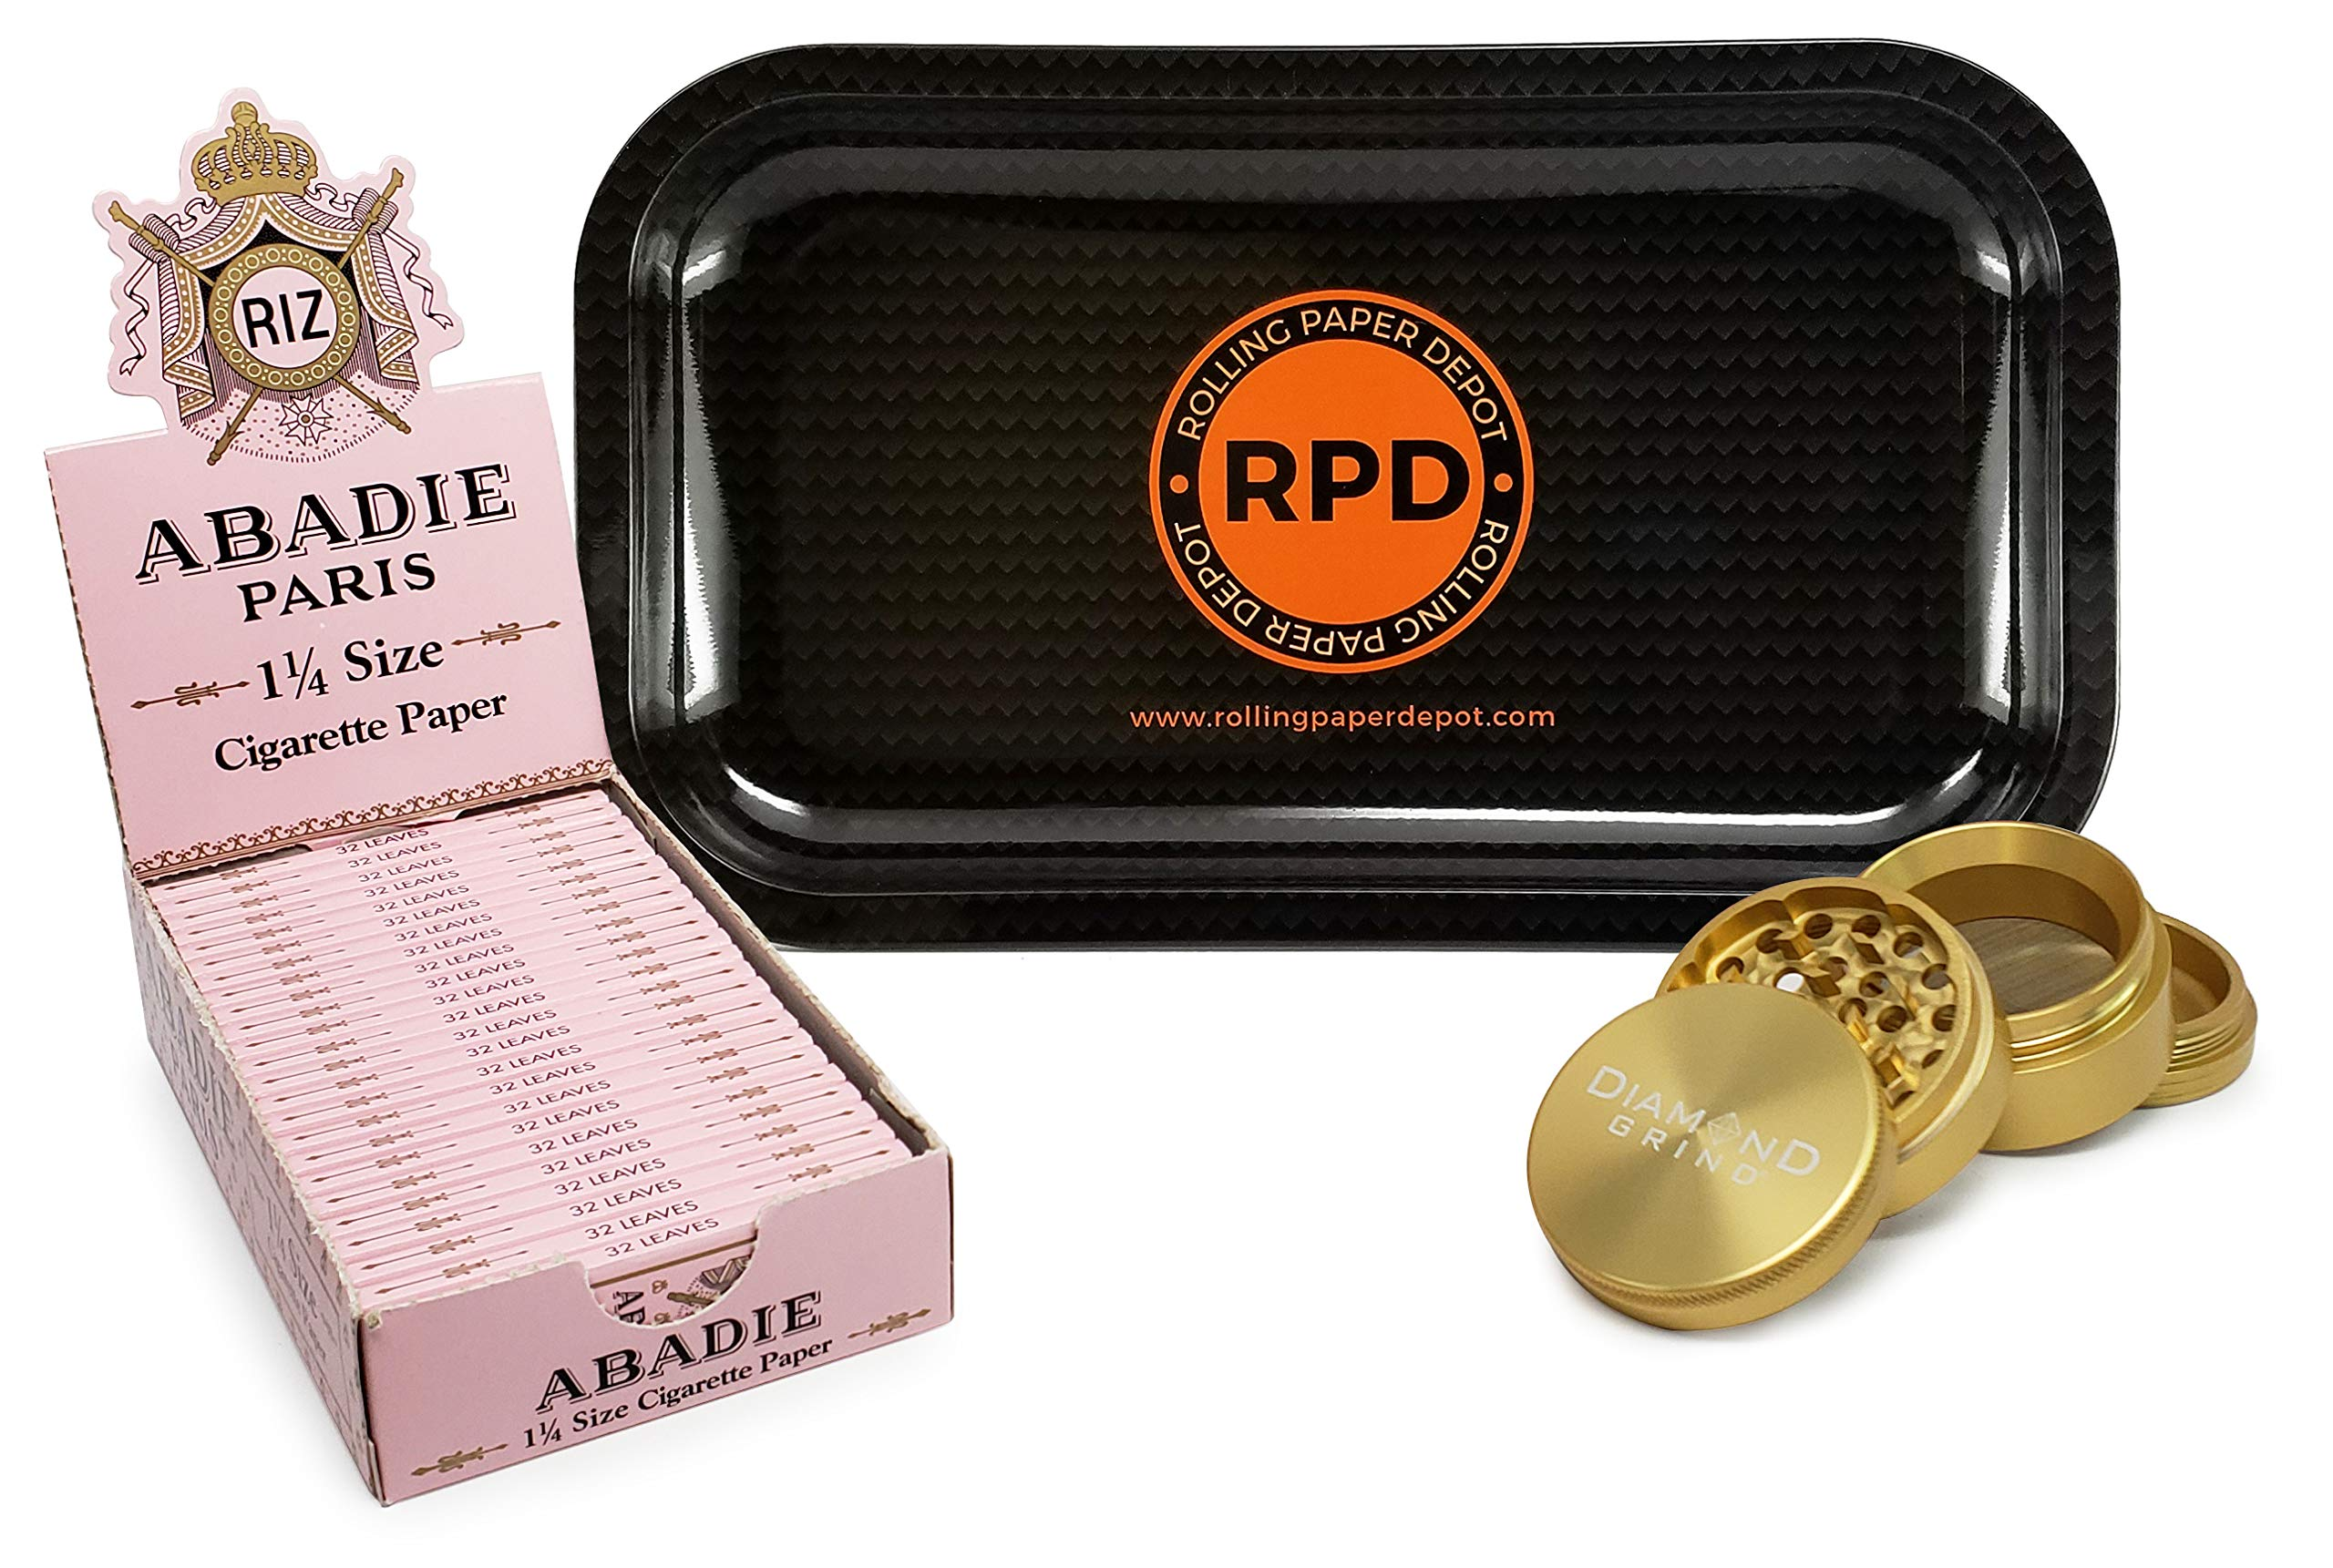 Abadie Rolling Papers 1 1/4 (Full Box) with Diamond Grind 56mm Grinder and Rolling Paper Depot Rolling Tray